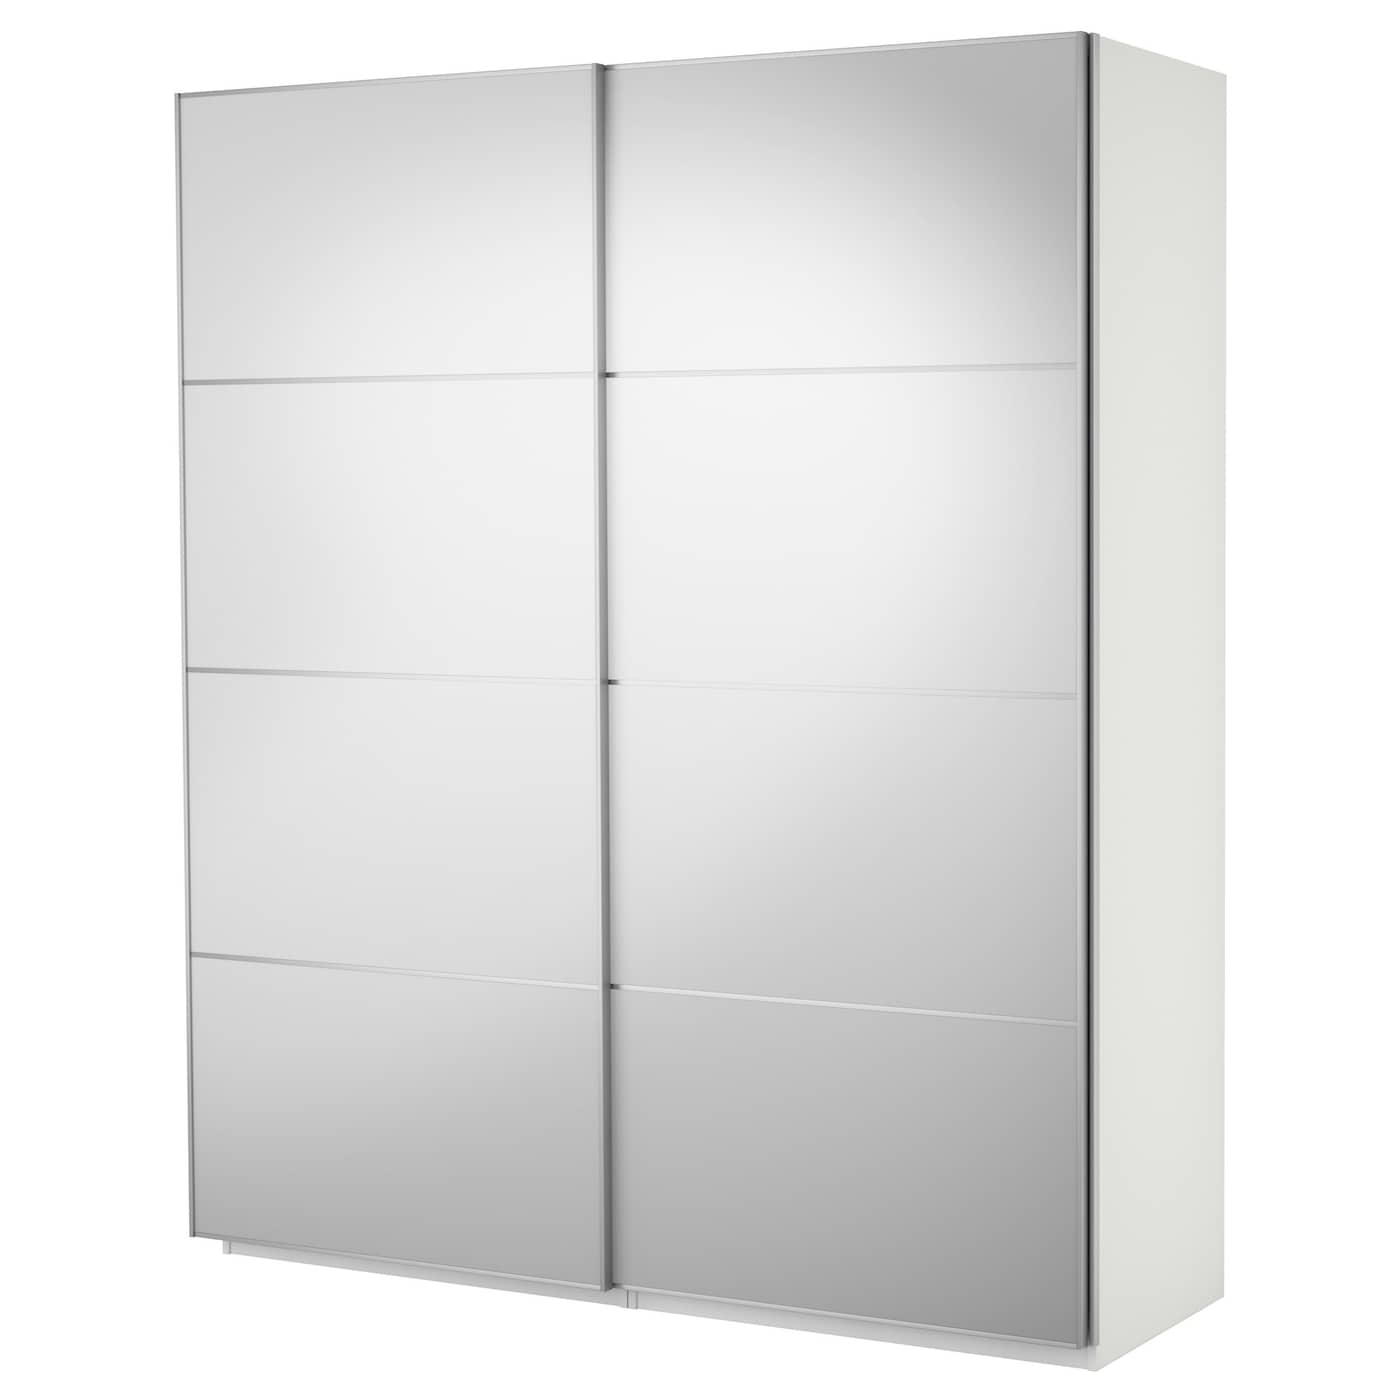 Pax Wardrobe With Sliding Doors Whiteauli Mirror Glass 200 X 44 X